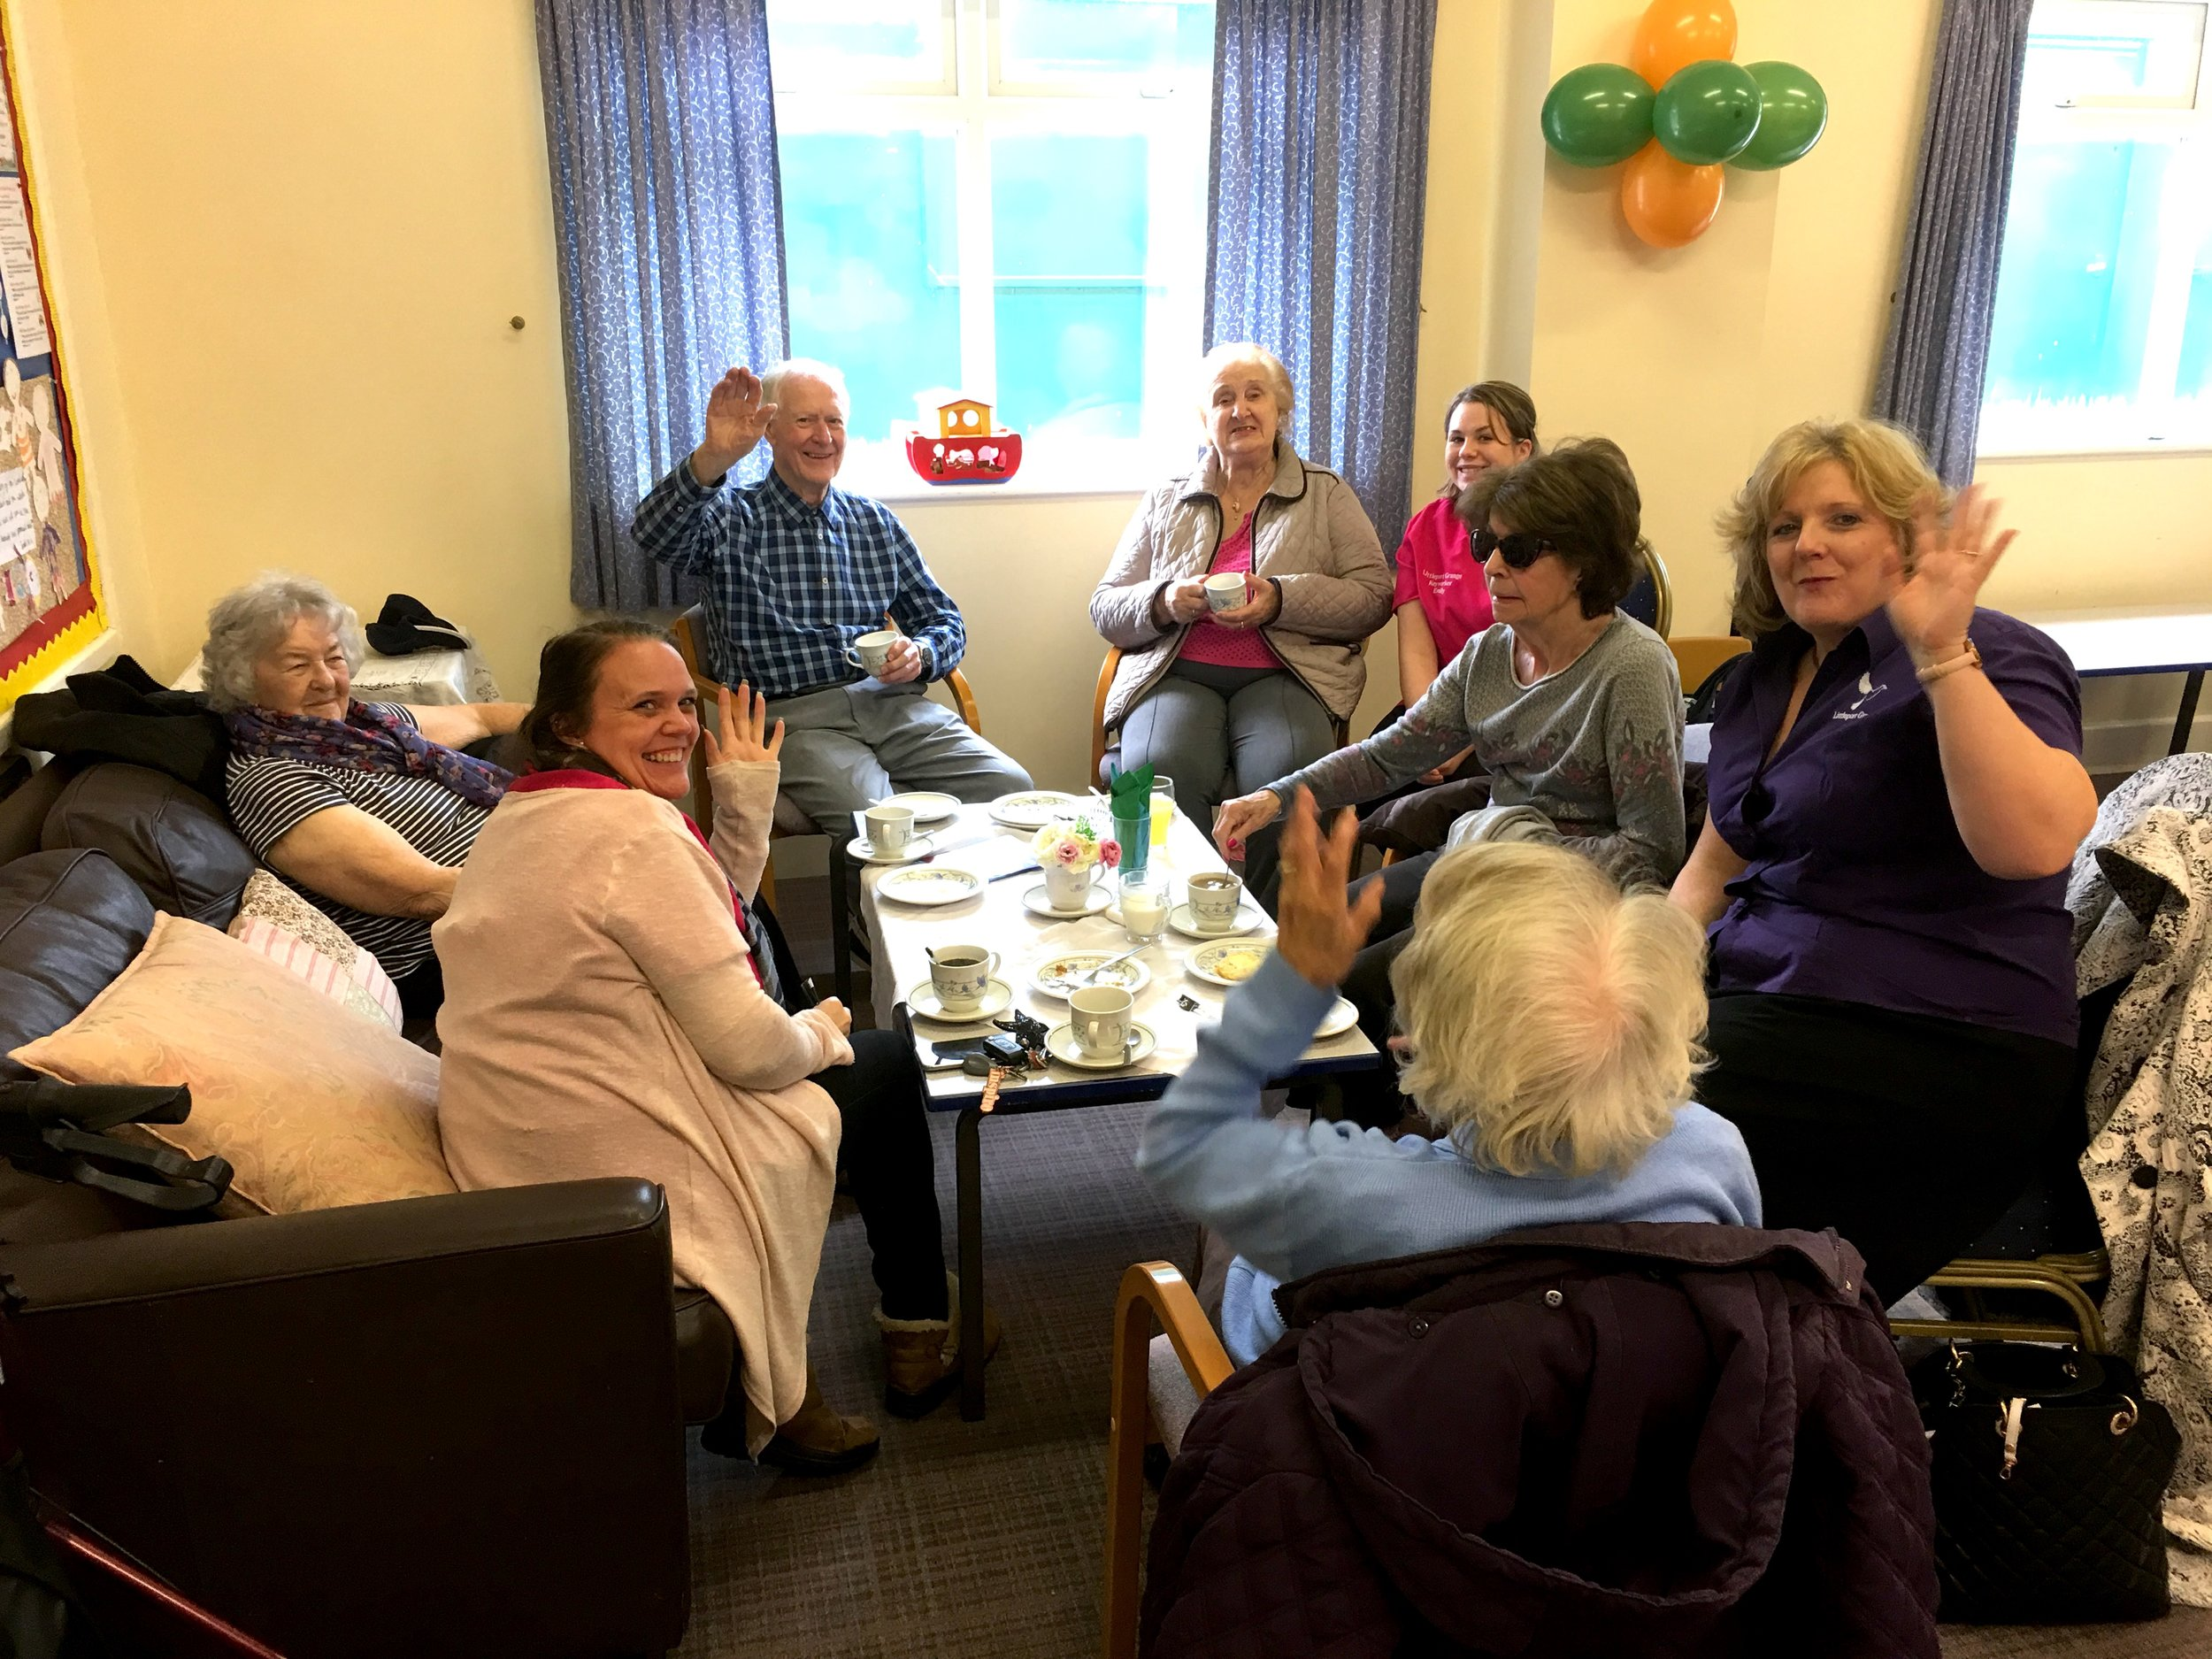 Coffee, cake and chat! A great mixture!